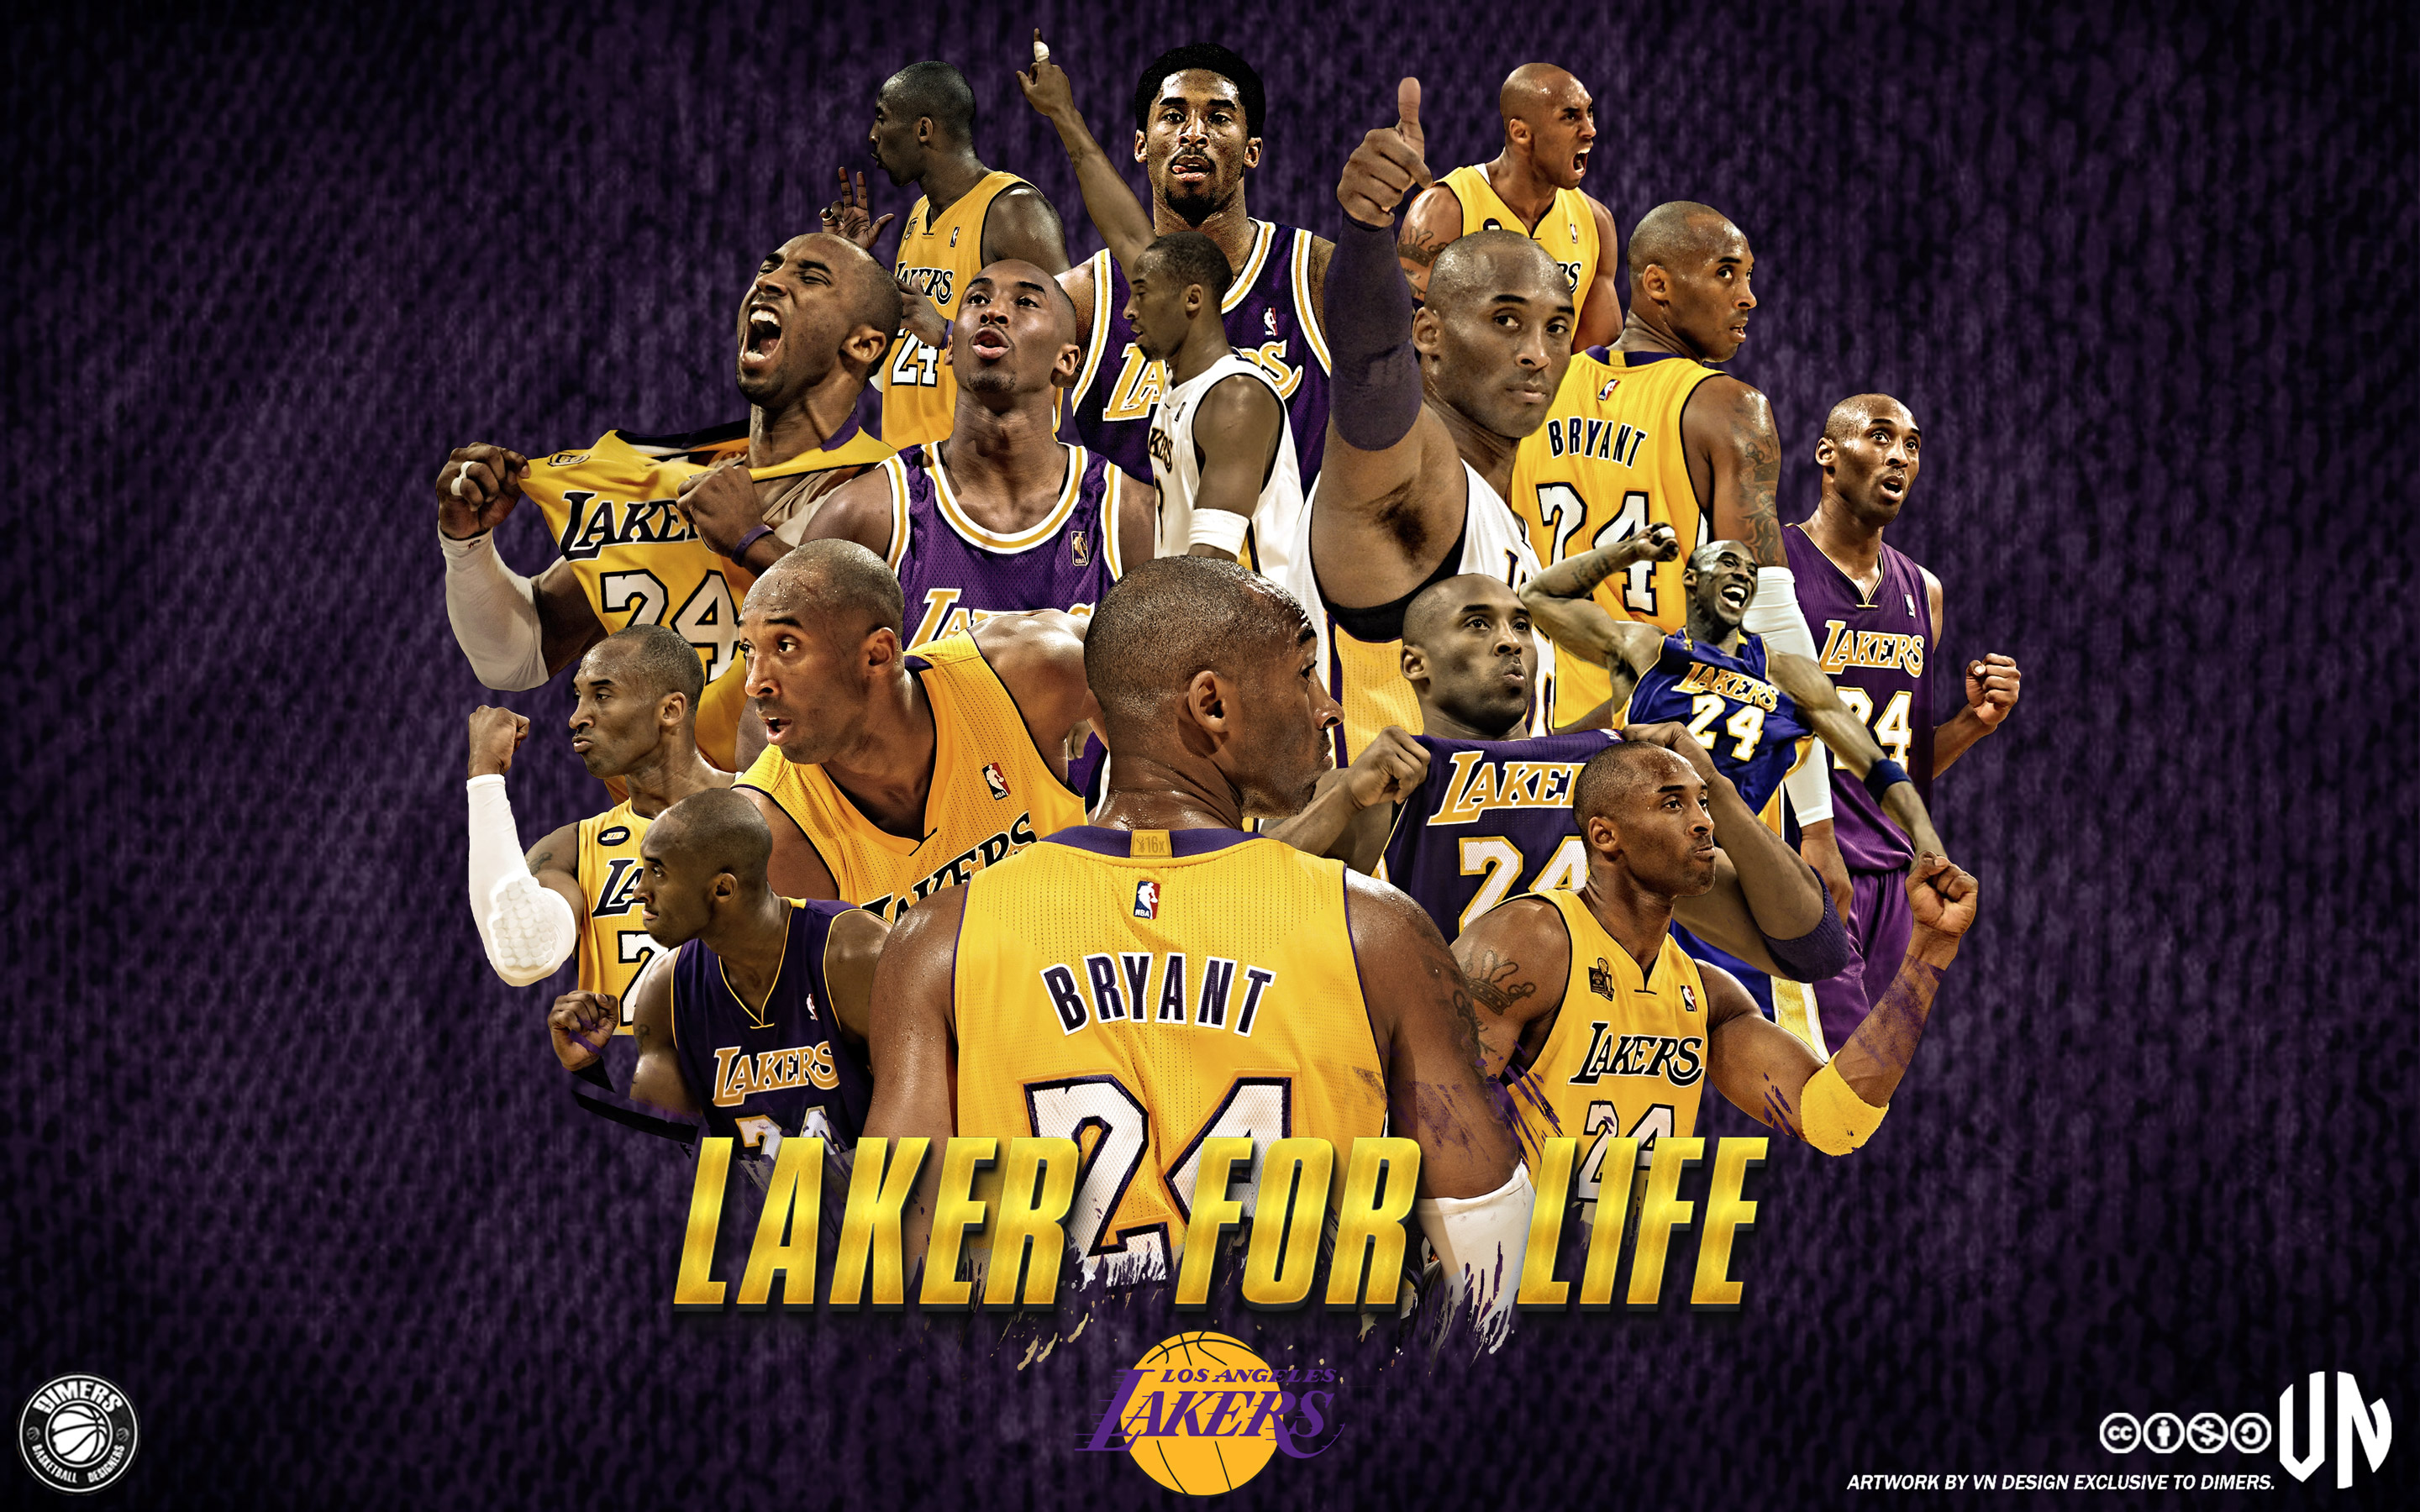 basketball wallpapers basketball wallpapers 2015 basketball wallpapers 2880x1800